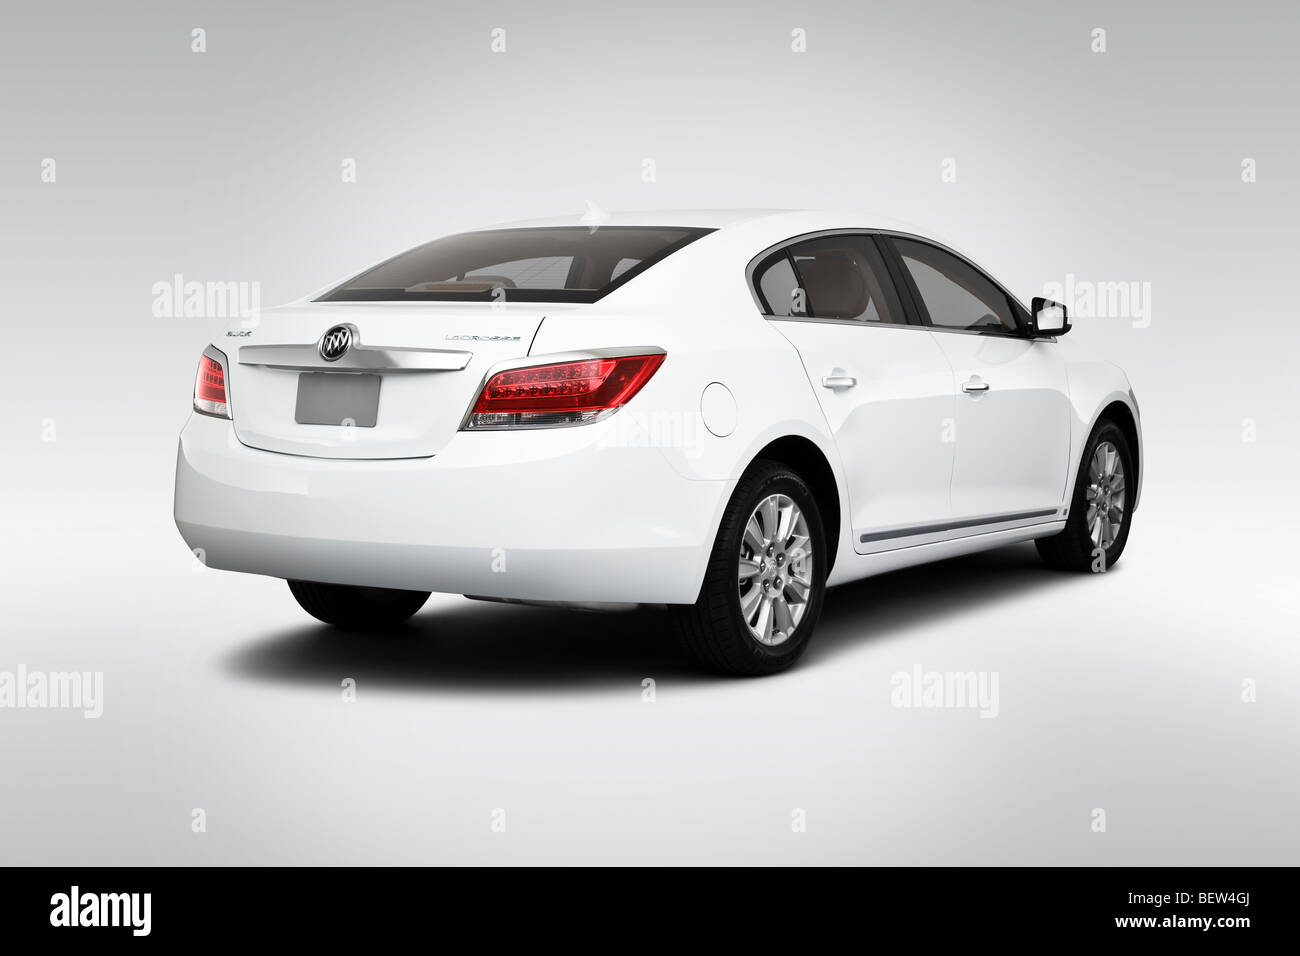 2010 buick lacrosse cx in white rear angle view stock photo 2010 buick lacrosse cx in white rear angle view publicscrutiny Images